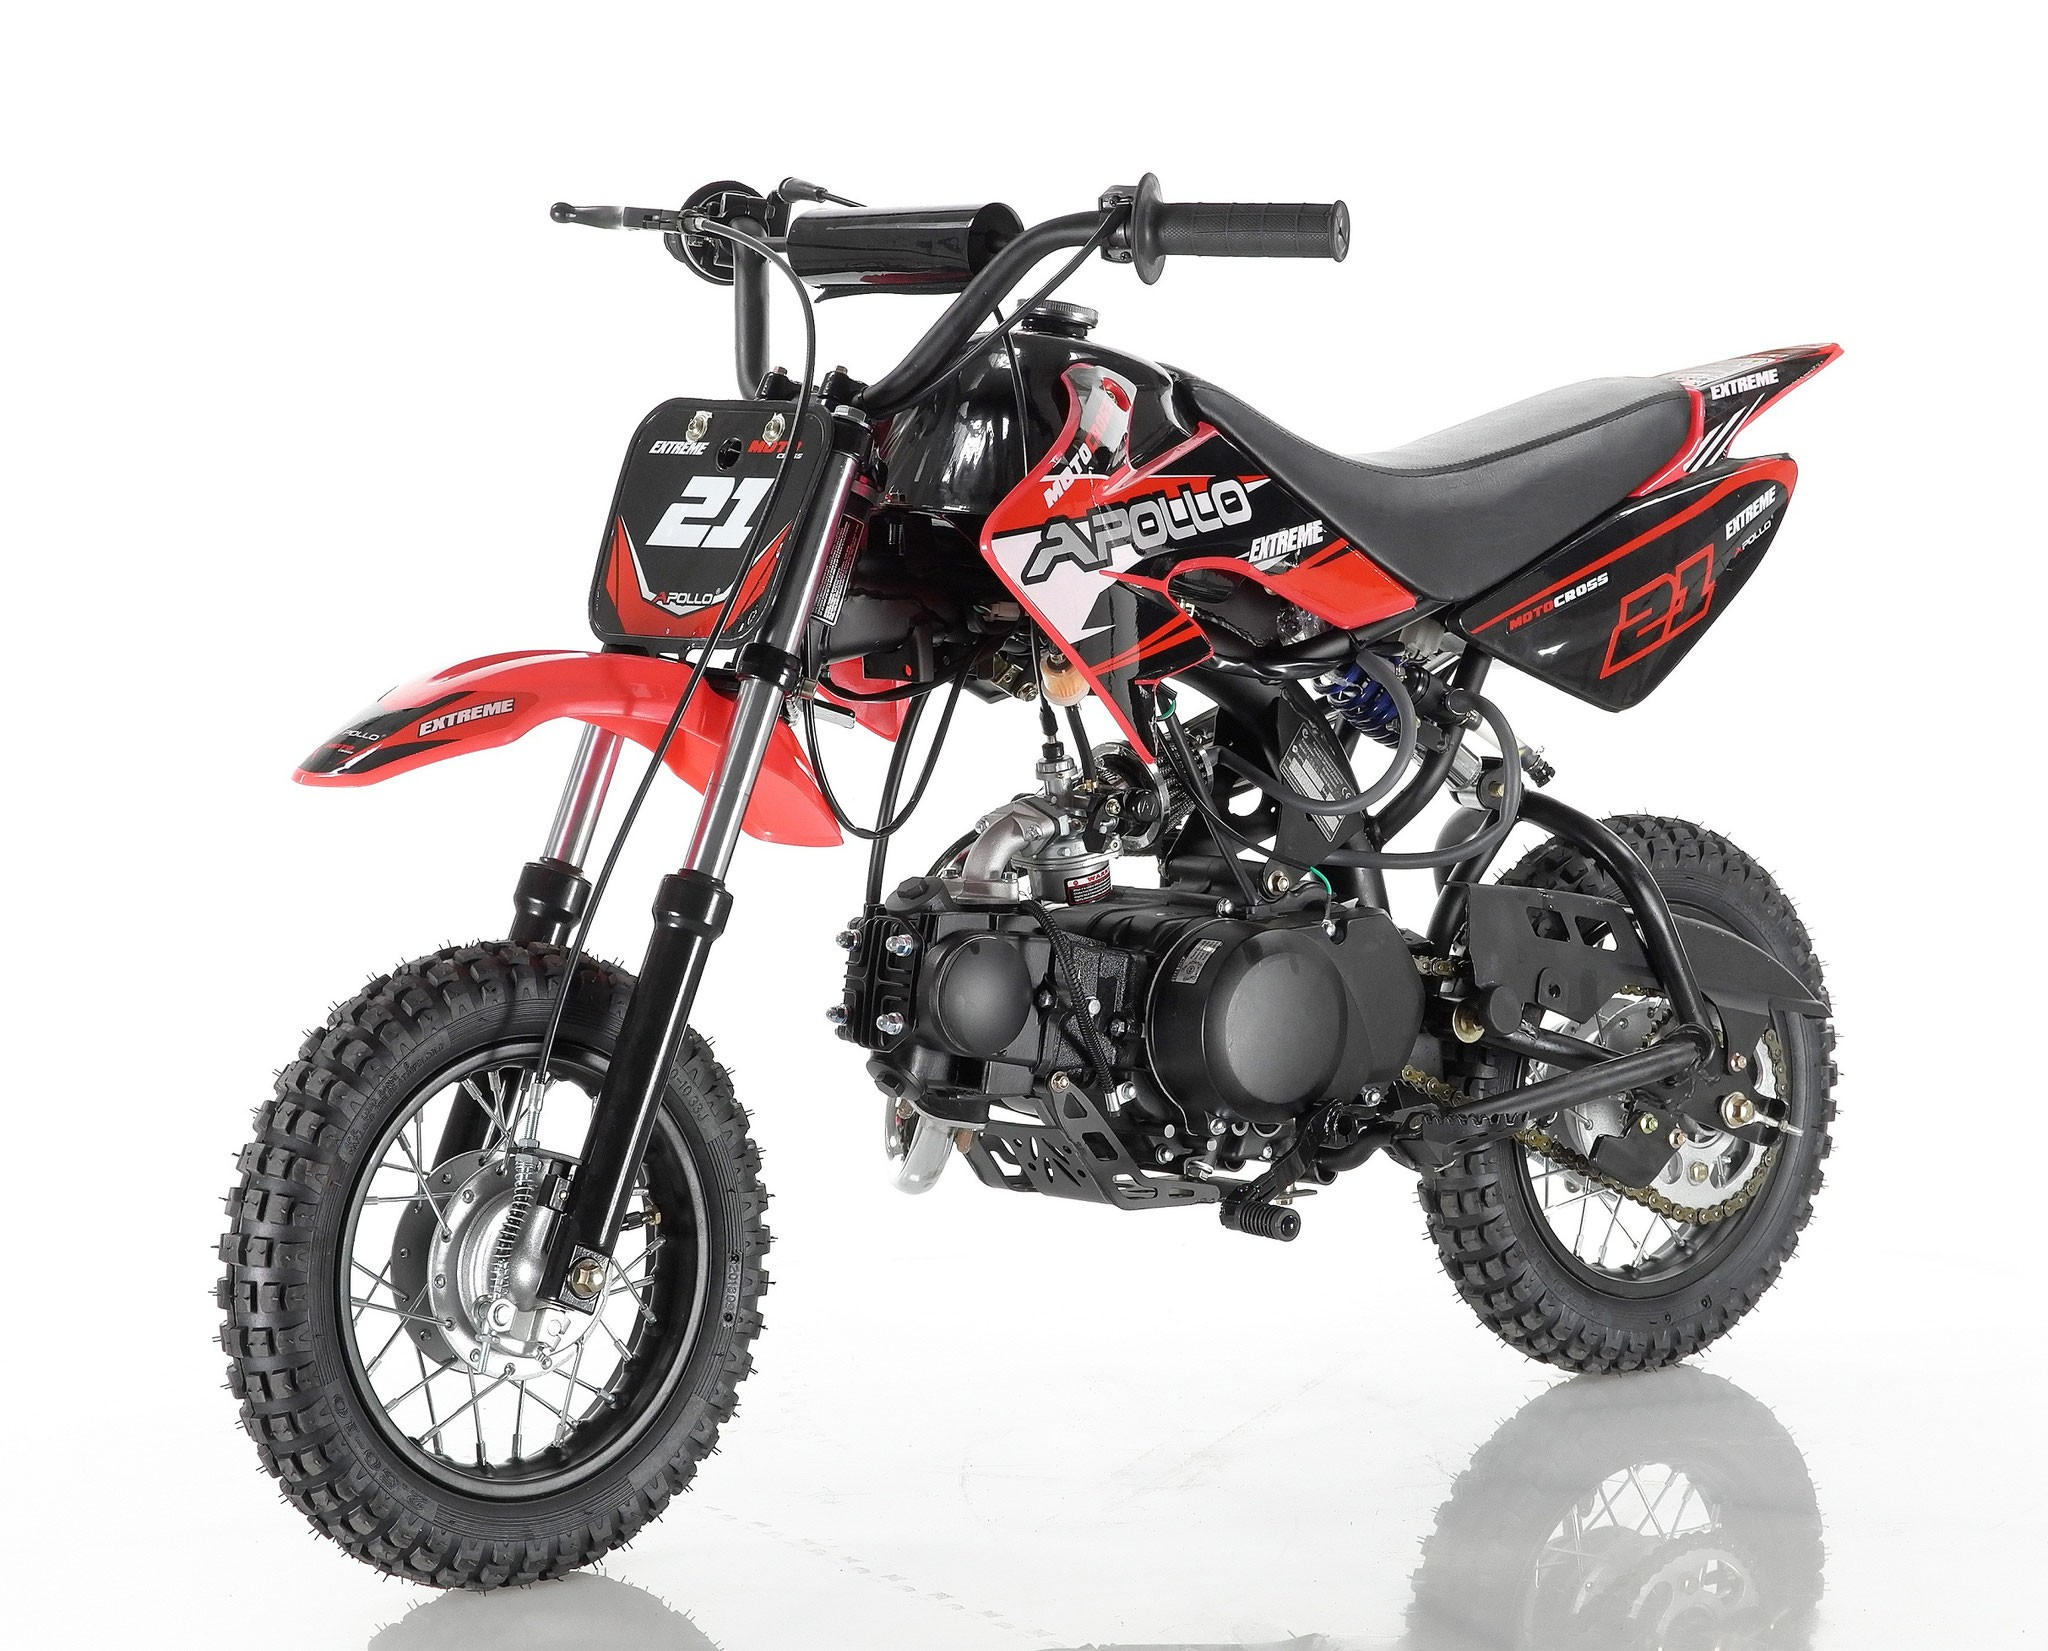 apollo 70cc db 21 3 speed simi auto pit dirt bike. Black Bedroom Furniture Sets. Home Design Ideas